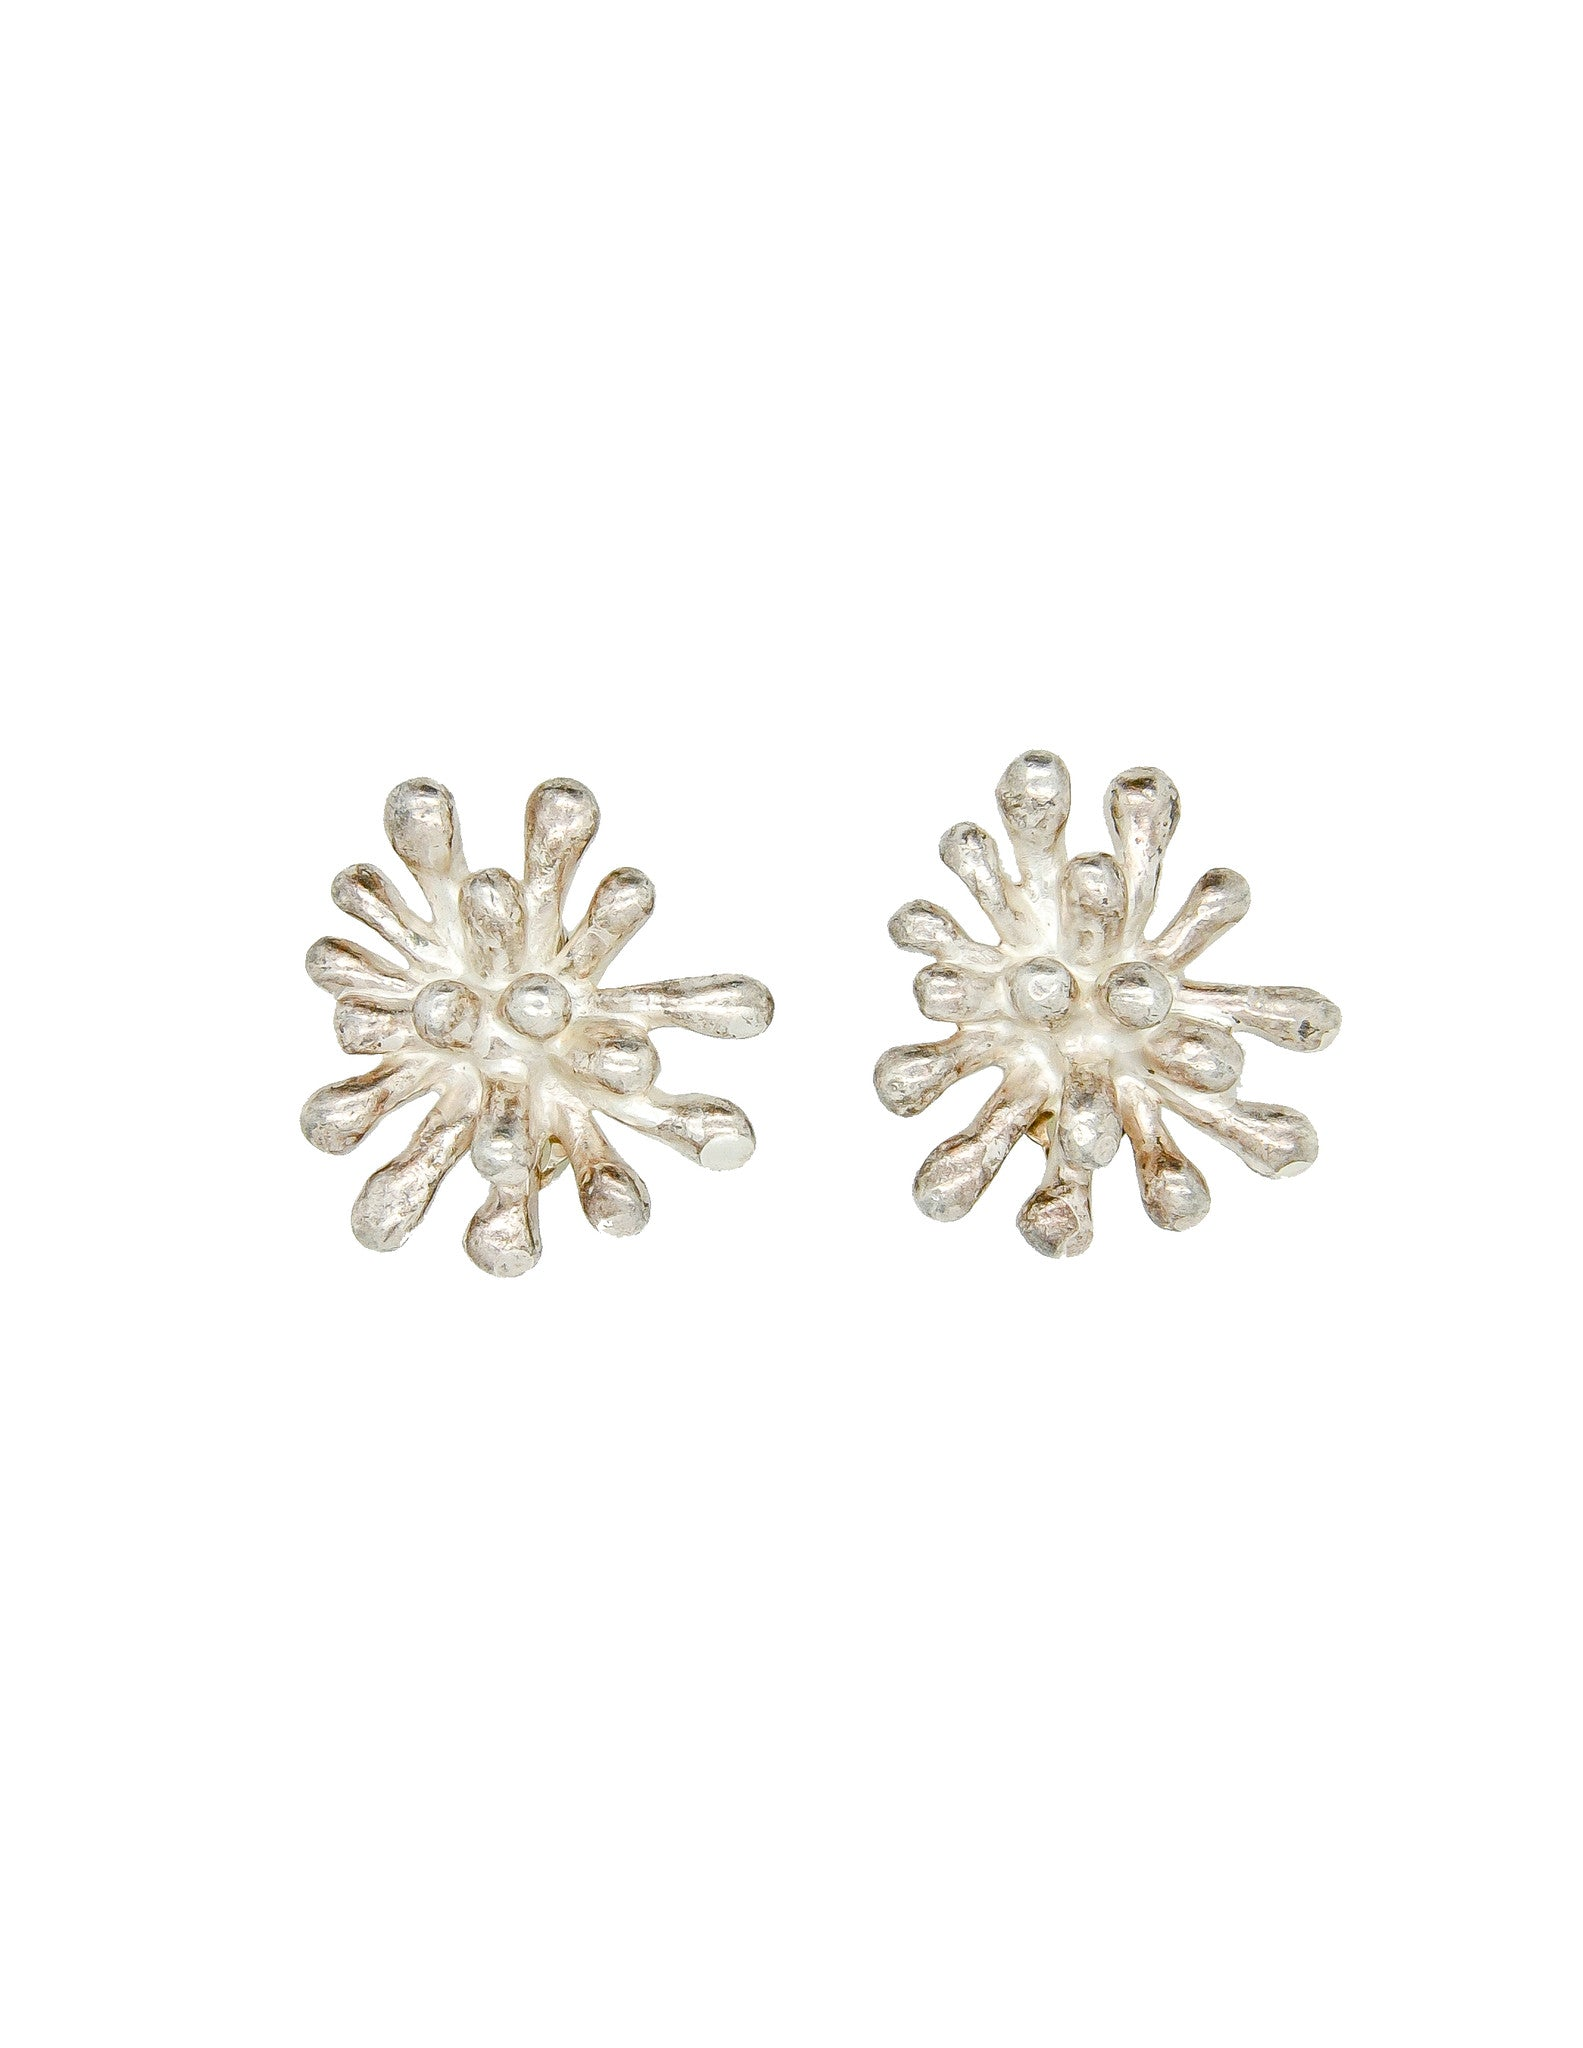 Christian Lacroix Vintage Silver Chrysanthemum Flower Earrings - Amarcord Vintage Fashion  - 1